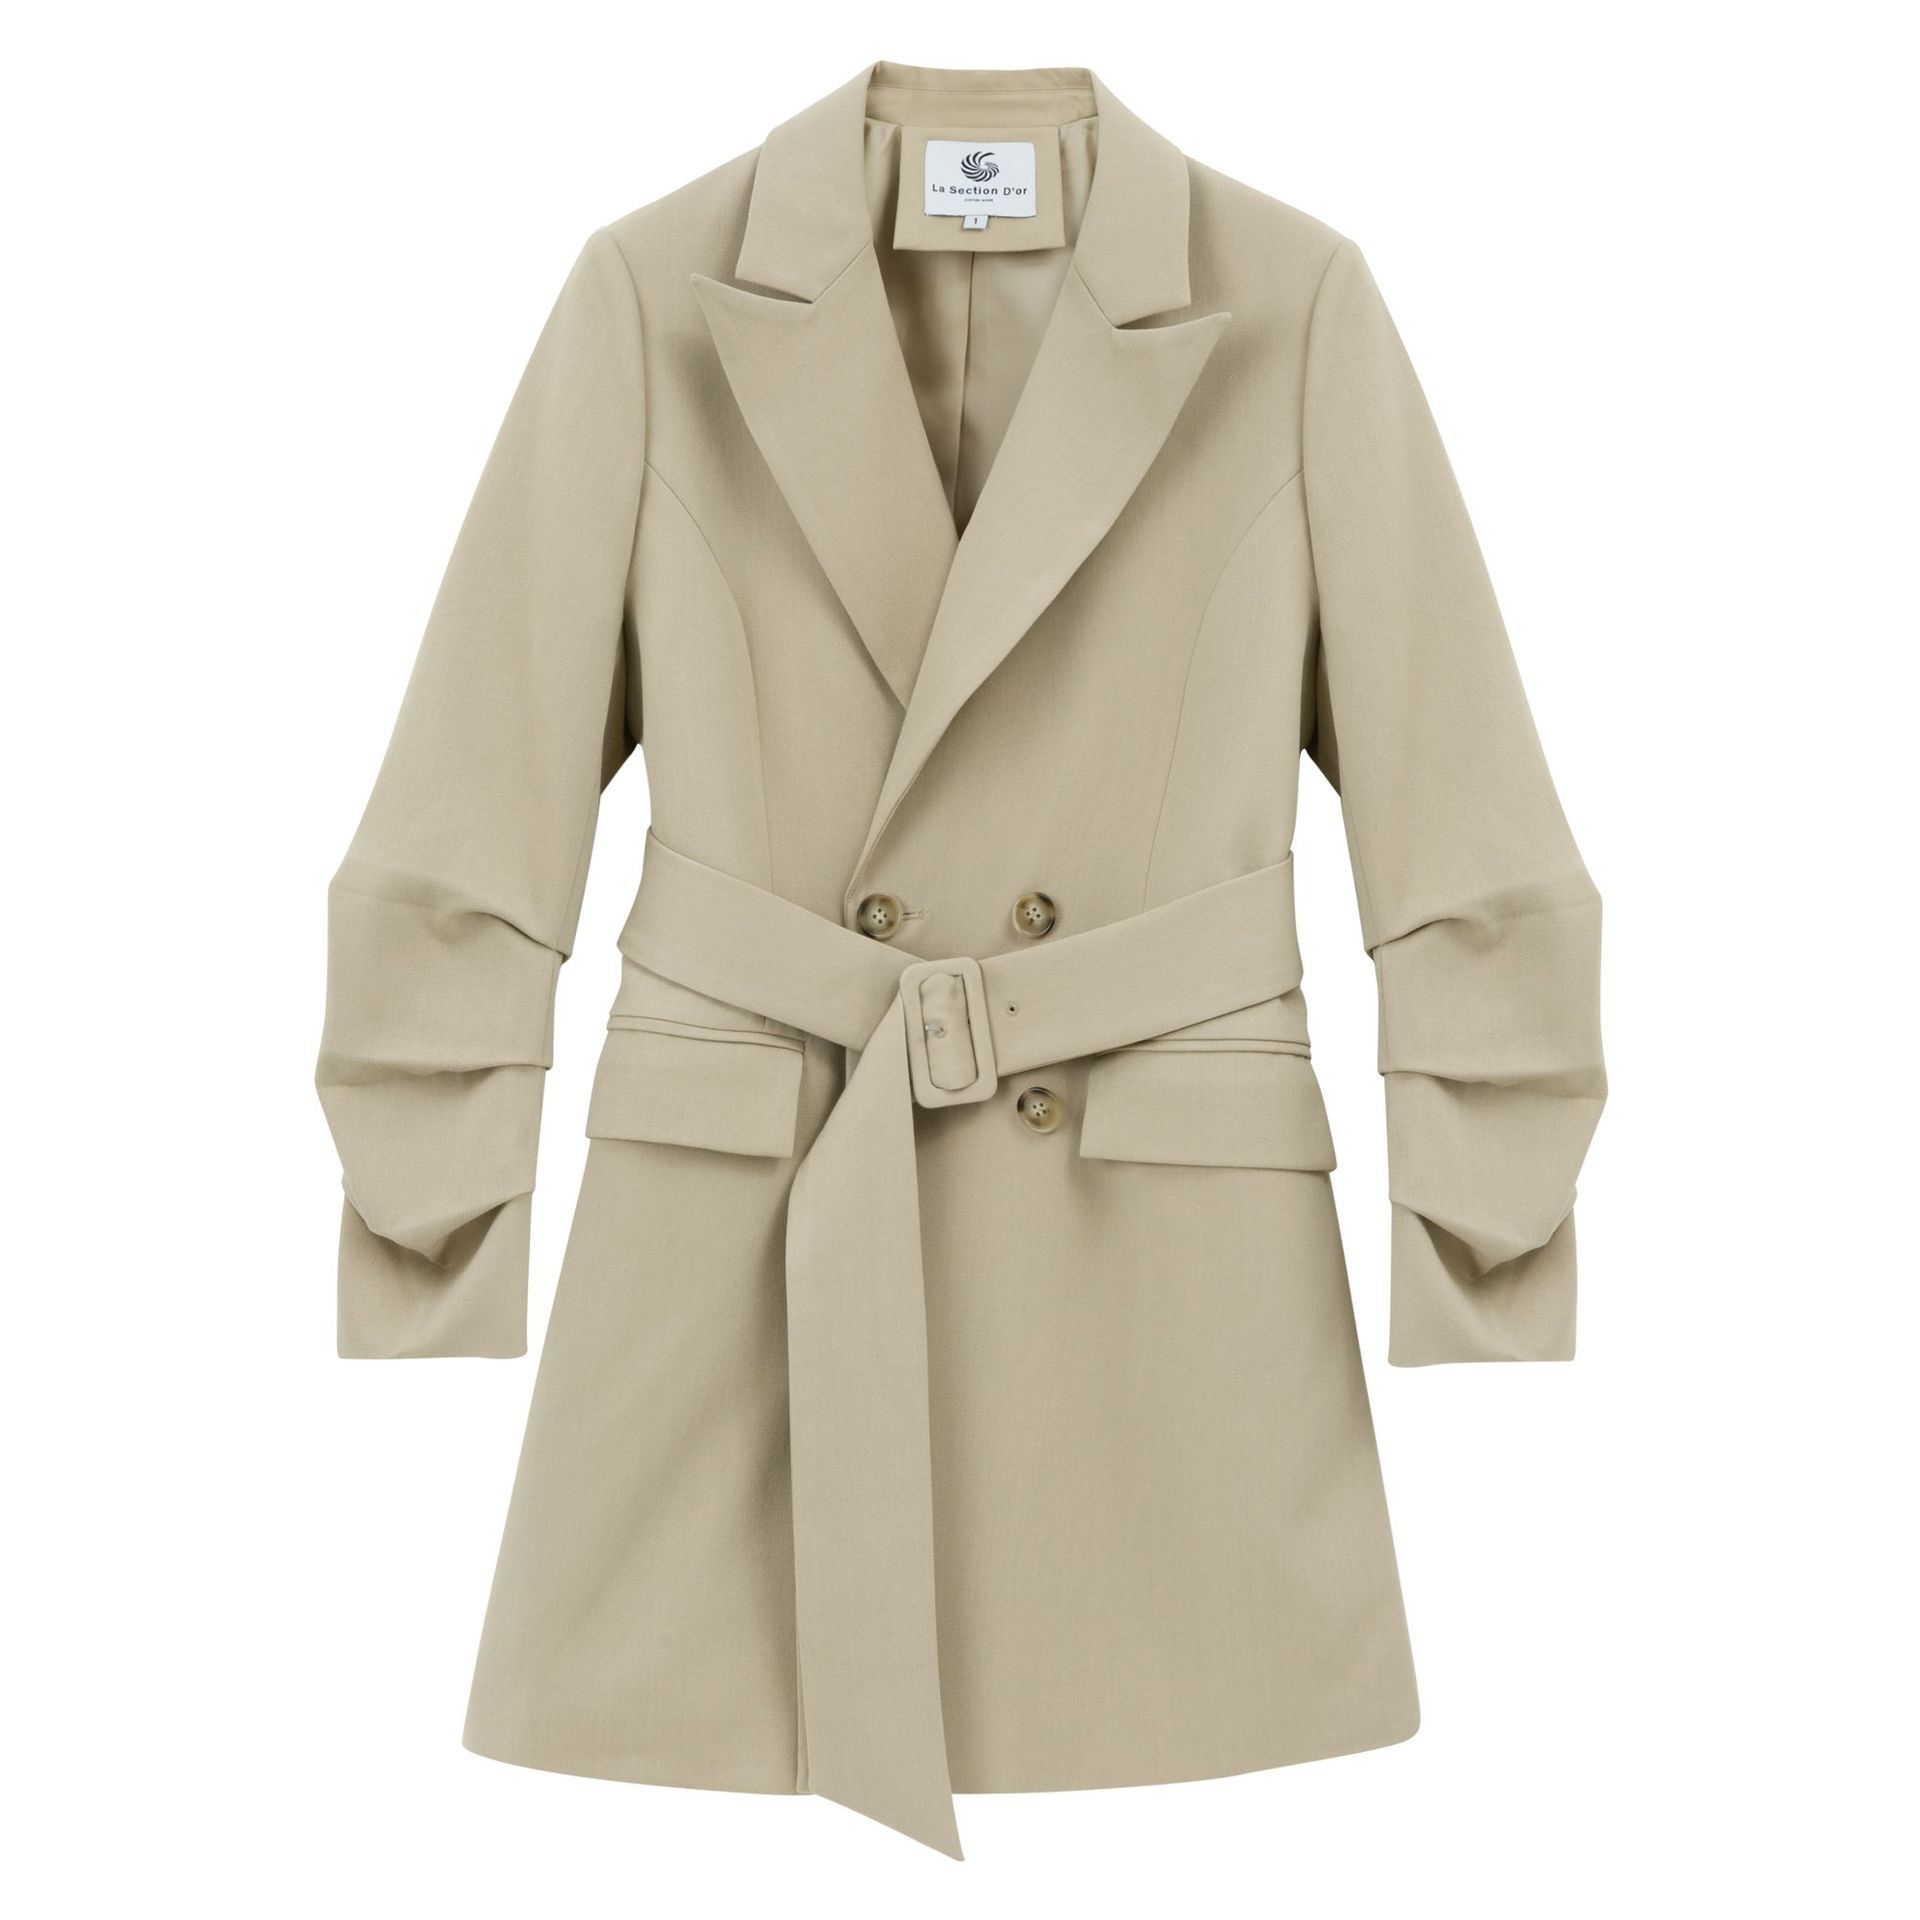 TITOTATO 2019 Spring Double Breasted Office Ladies Loose Suit Coat Full Women Casual Solid Notched Long Outerwear Femme Jacket